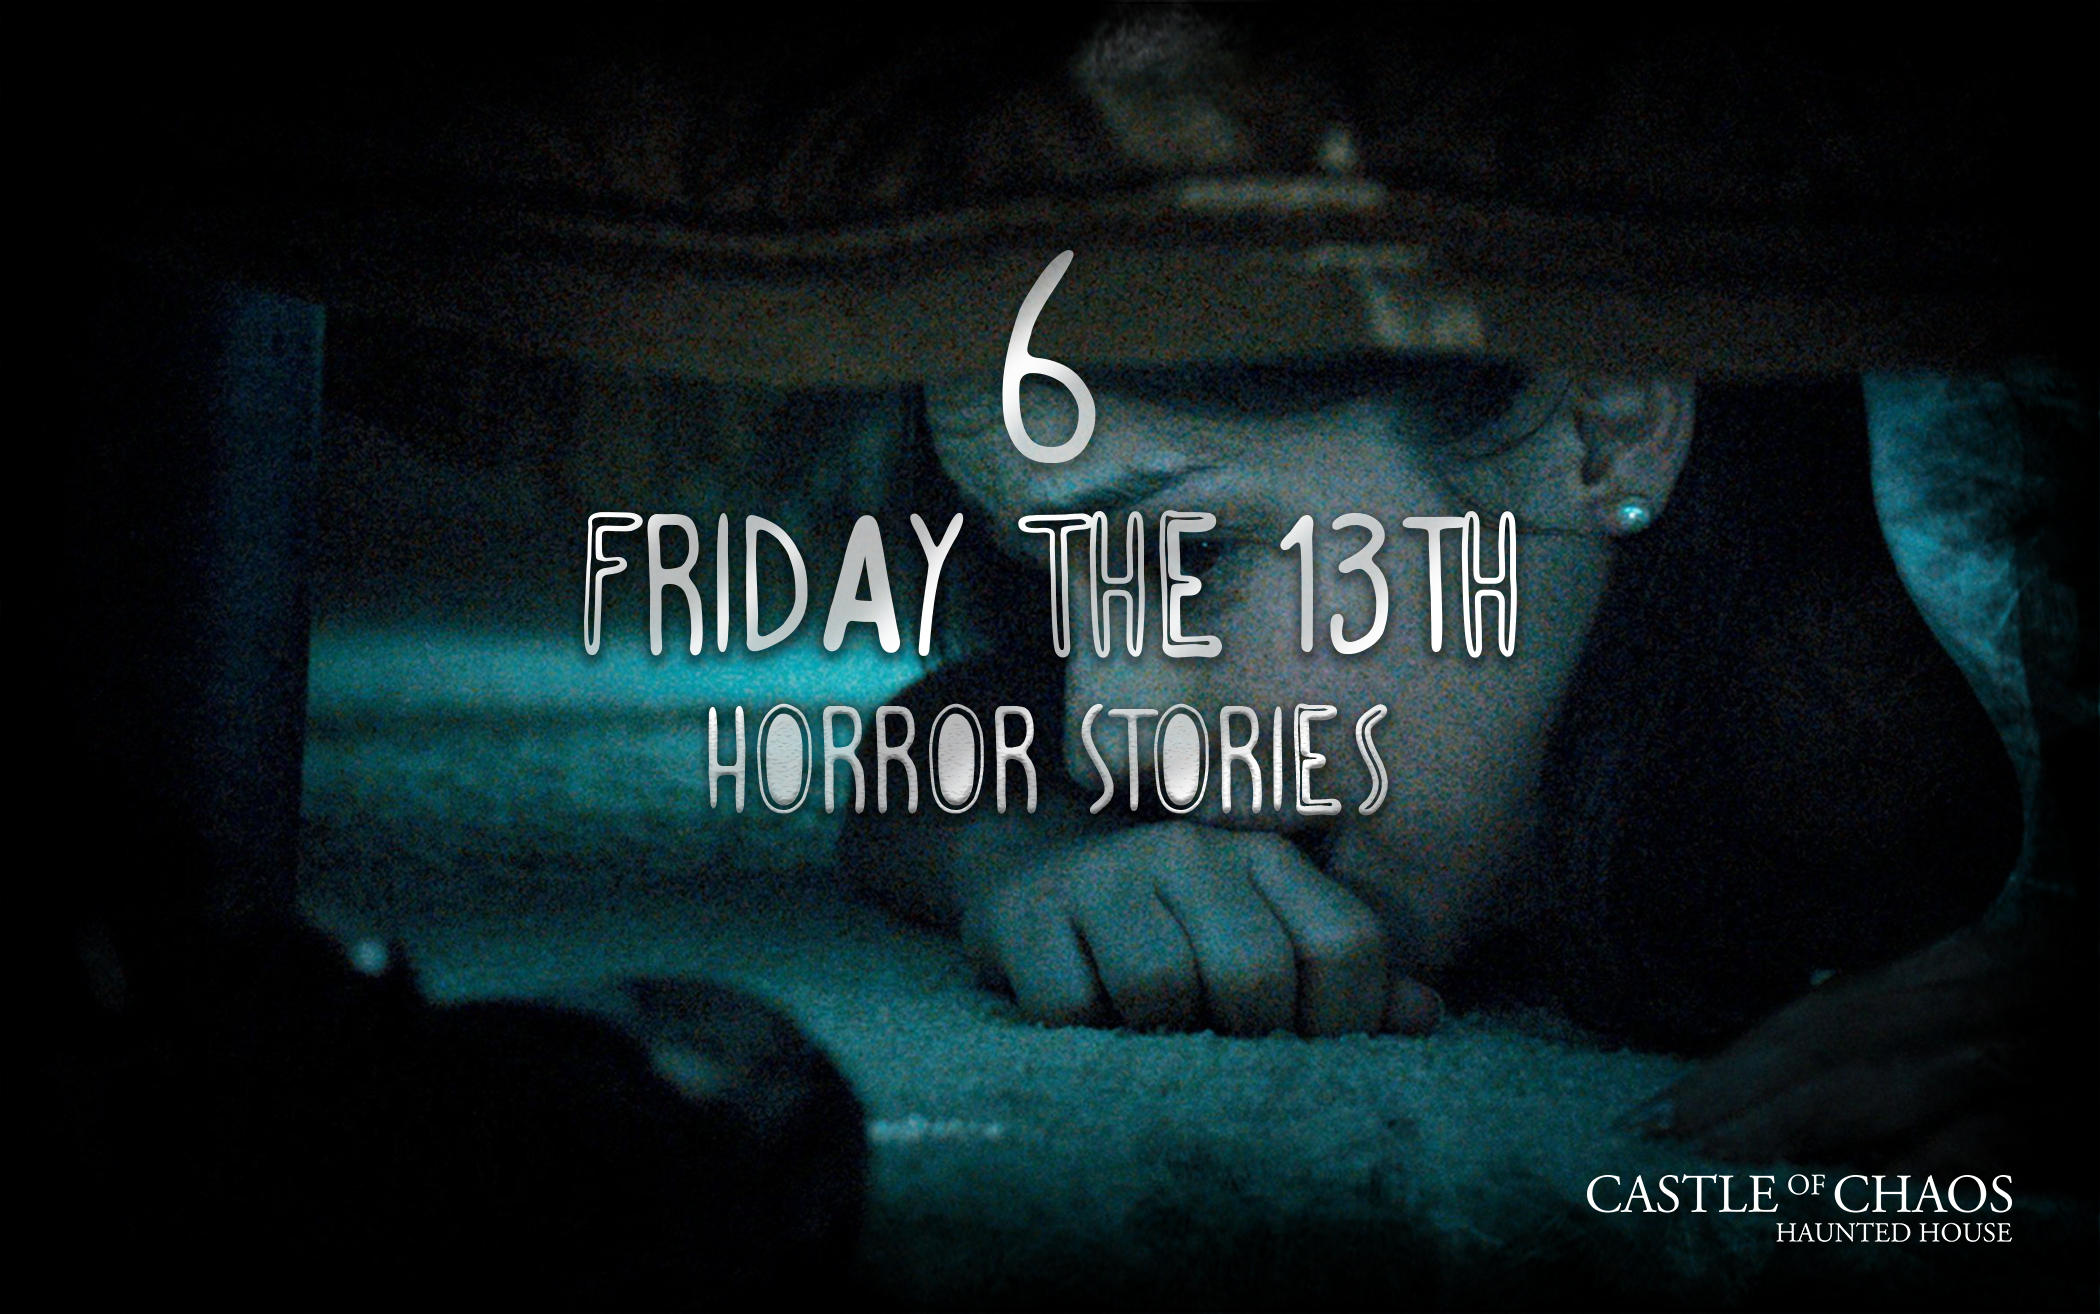 6 Real Life Friday the 13th Horror Stories Friday Th House Design on friday cartoons, friday quotes, friday humor, friday 12th, friday text, friday meme, friday cat,